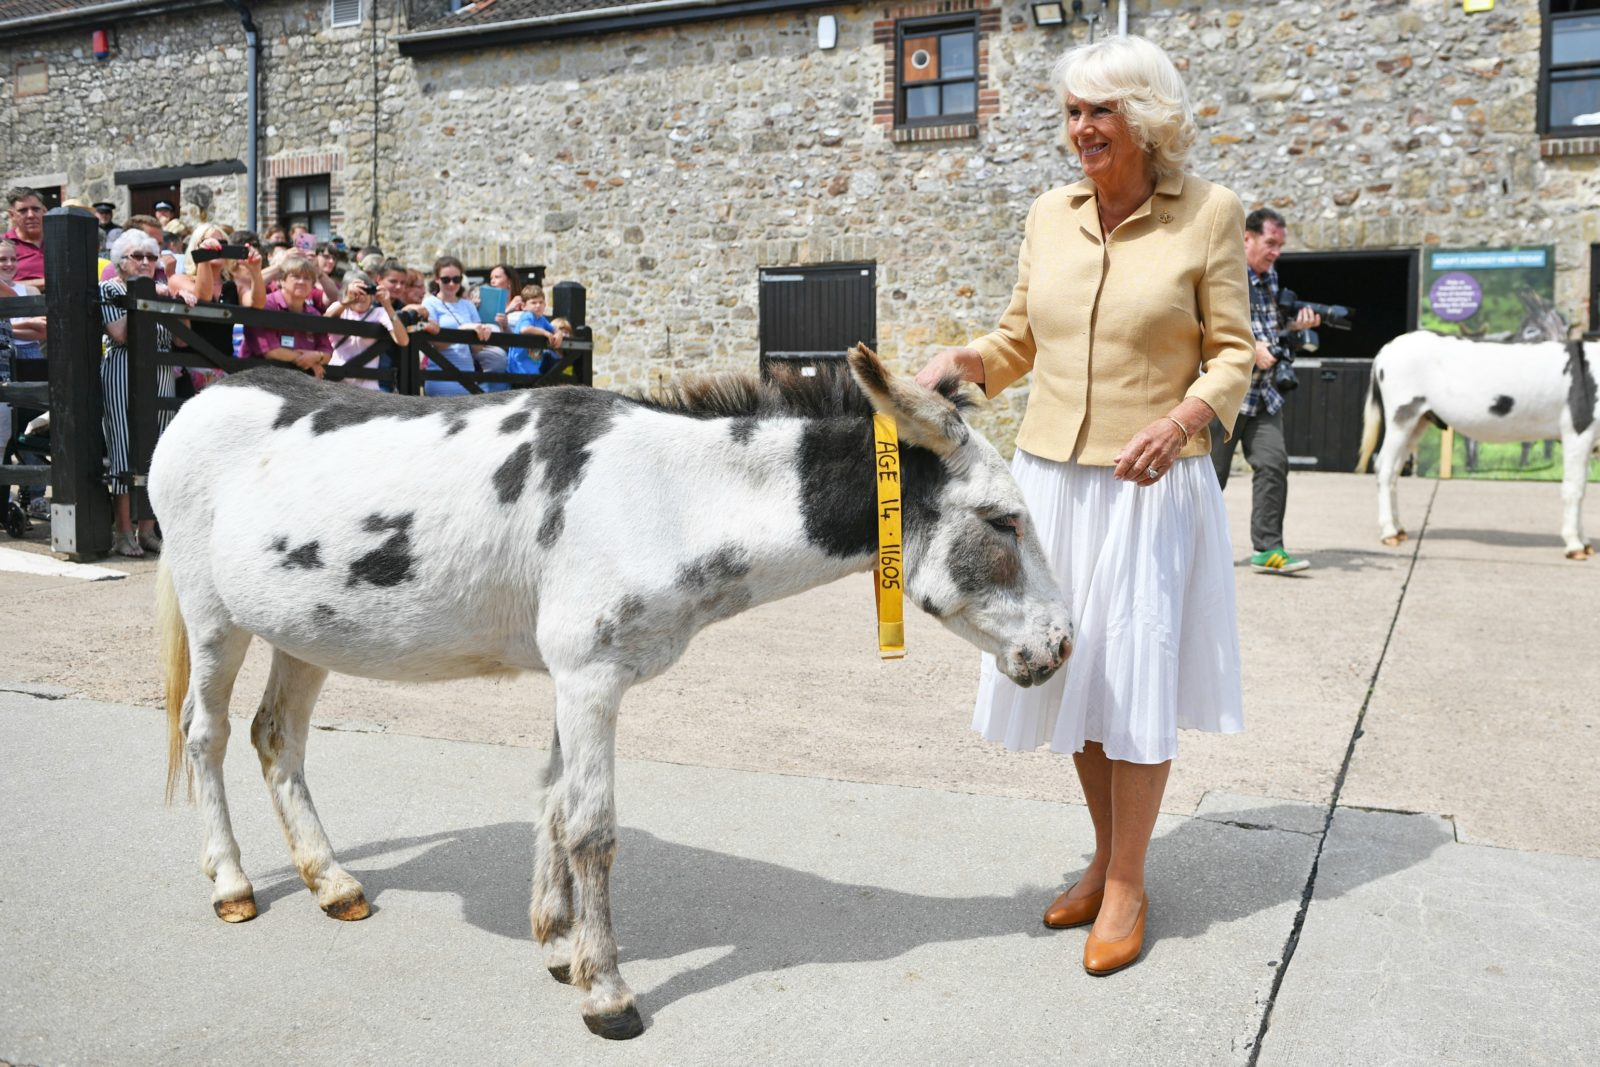 The Duchess of Cornwall during her visit to The Donkey Sanctuary. Source: Getty.